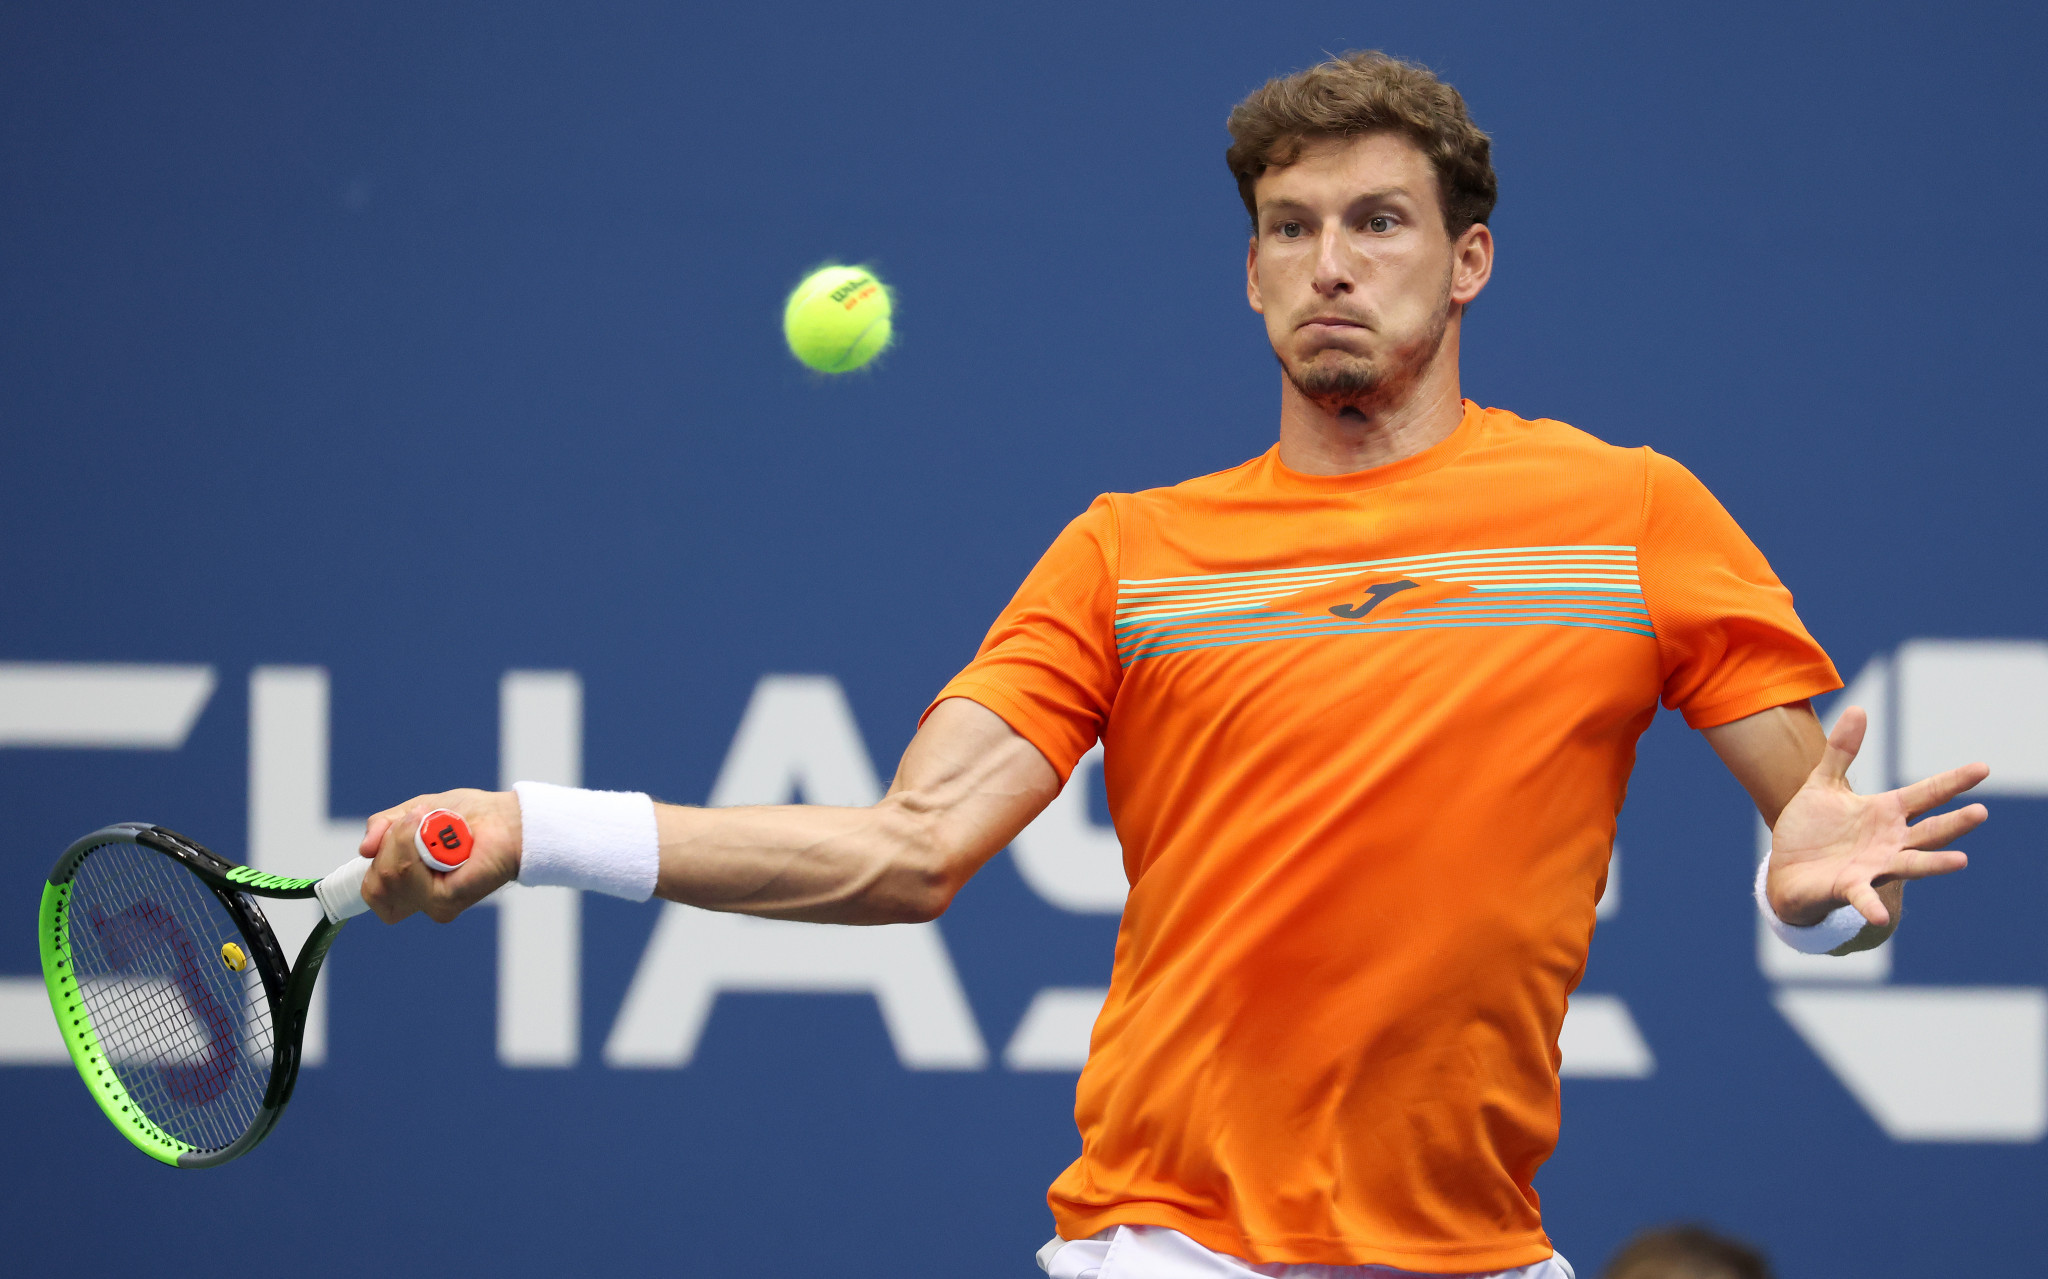 Carreno Busta, the 20th seed, took a two set lead over Zverev before the German's impressive fightback ©Getty Images